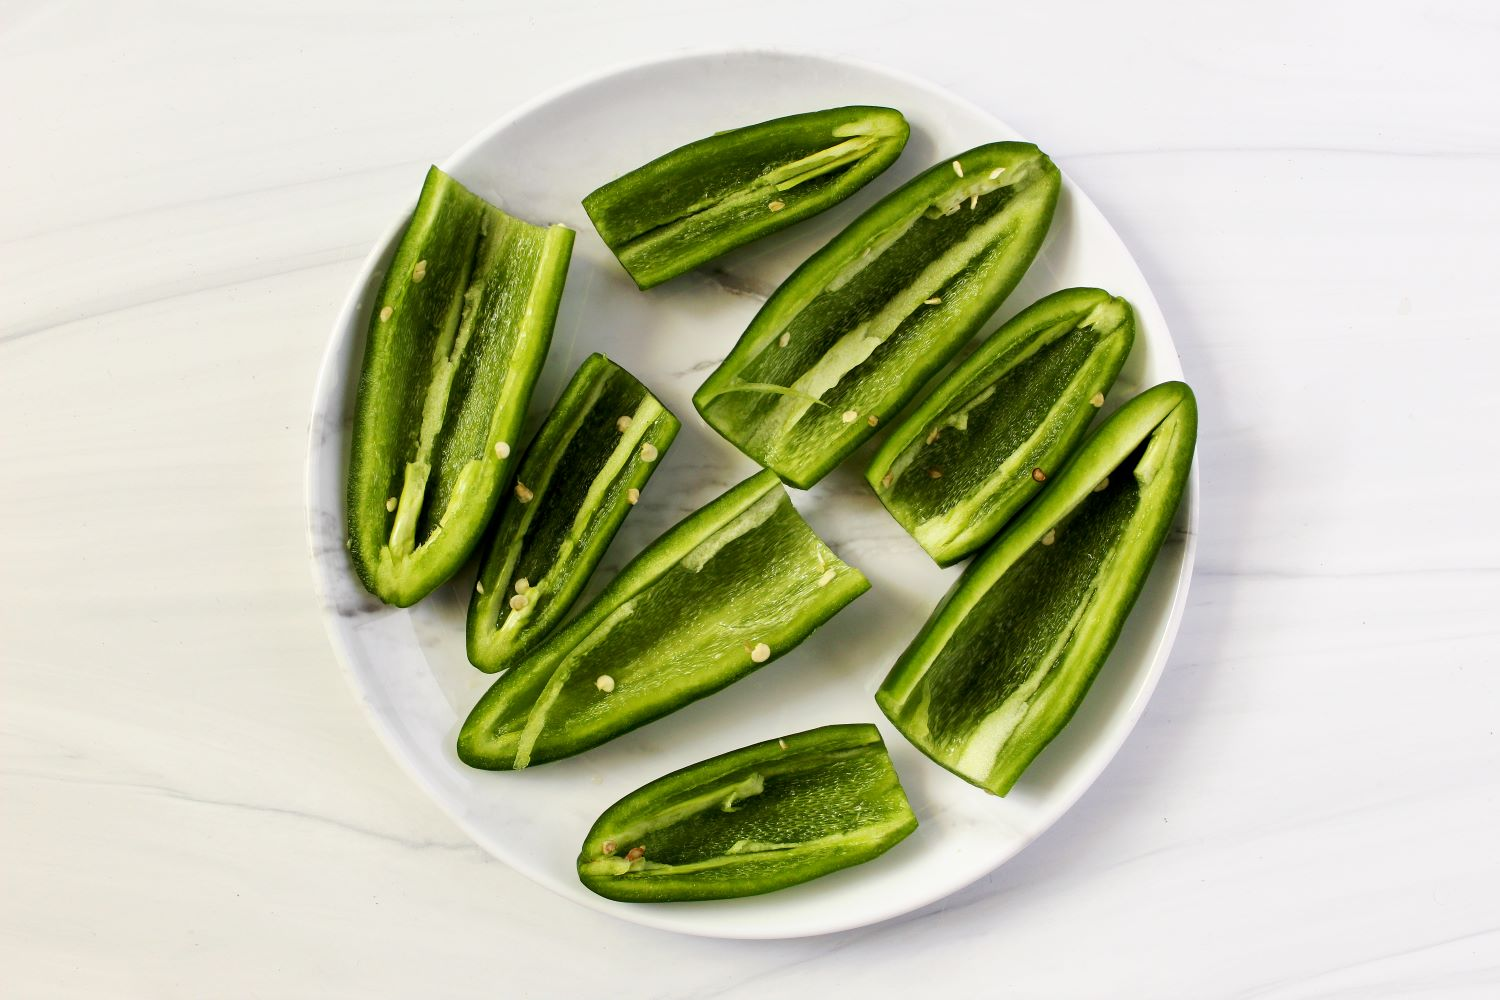 halved jalapenos with seeds removed 1